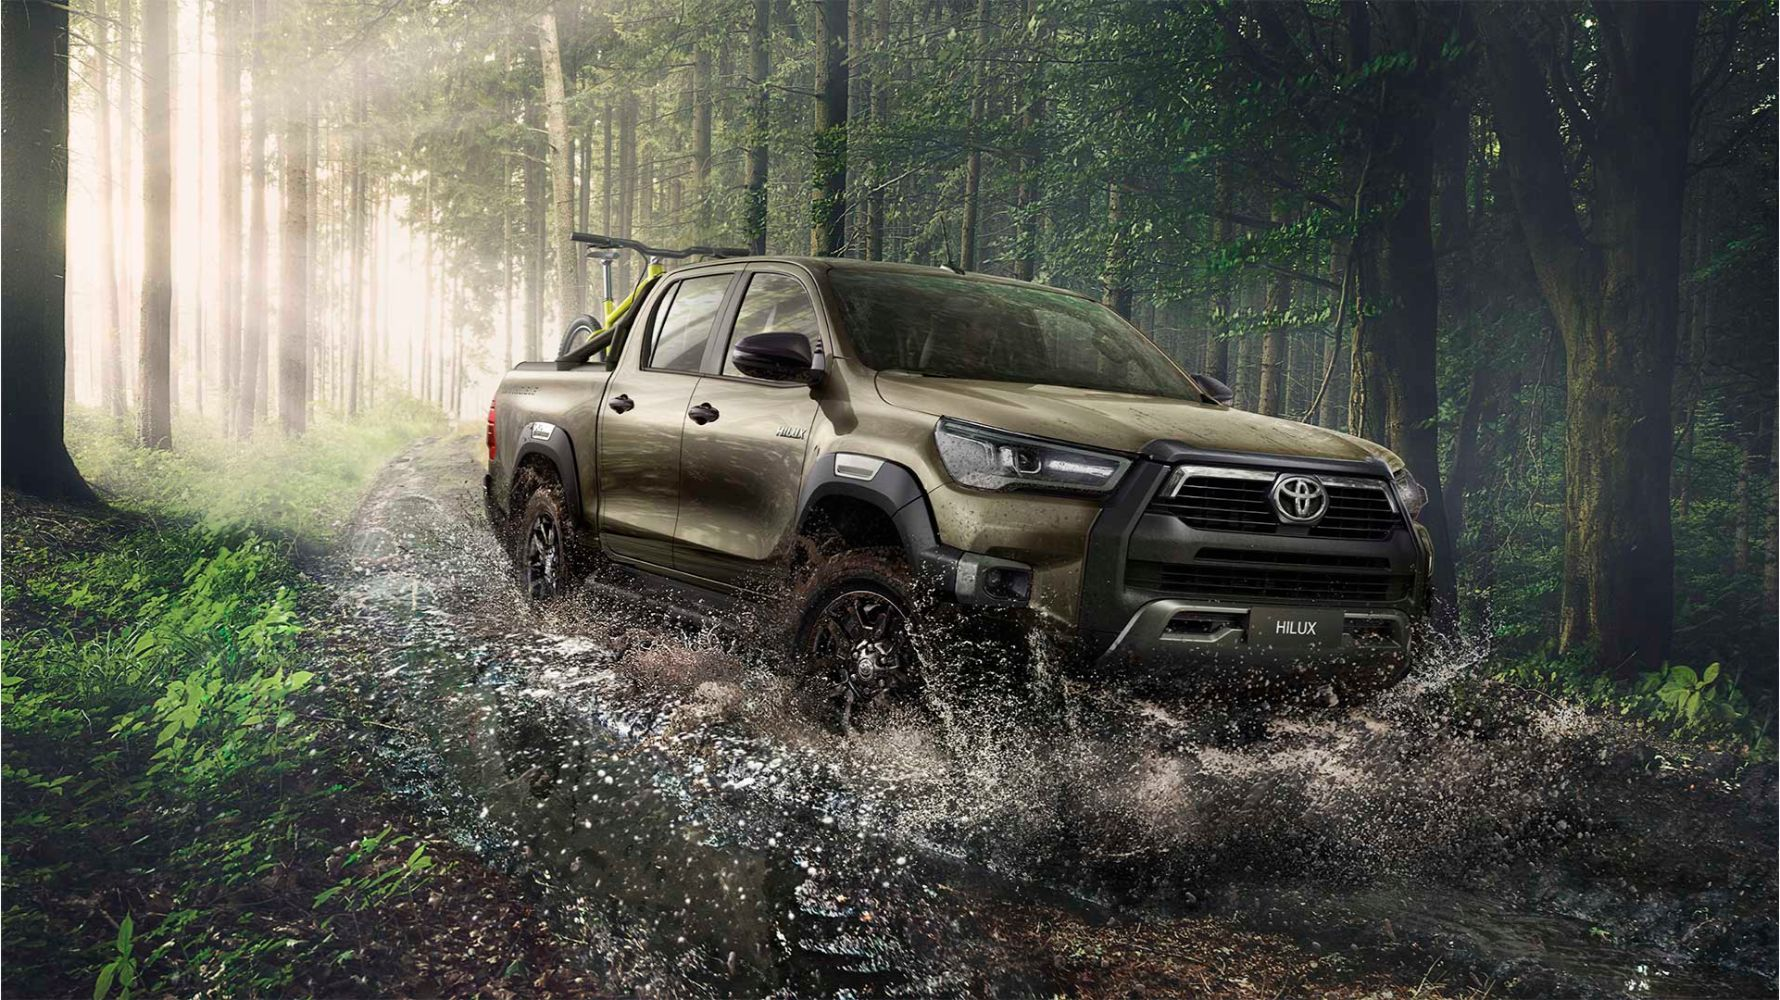 toyota_hilux_2020_gallery_04_full_tcm_3046_2017449